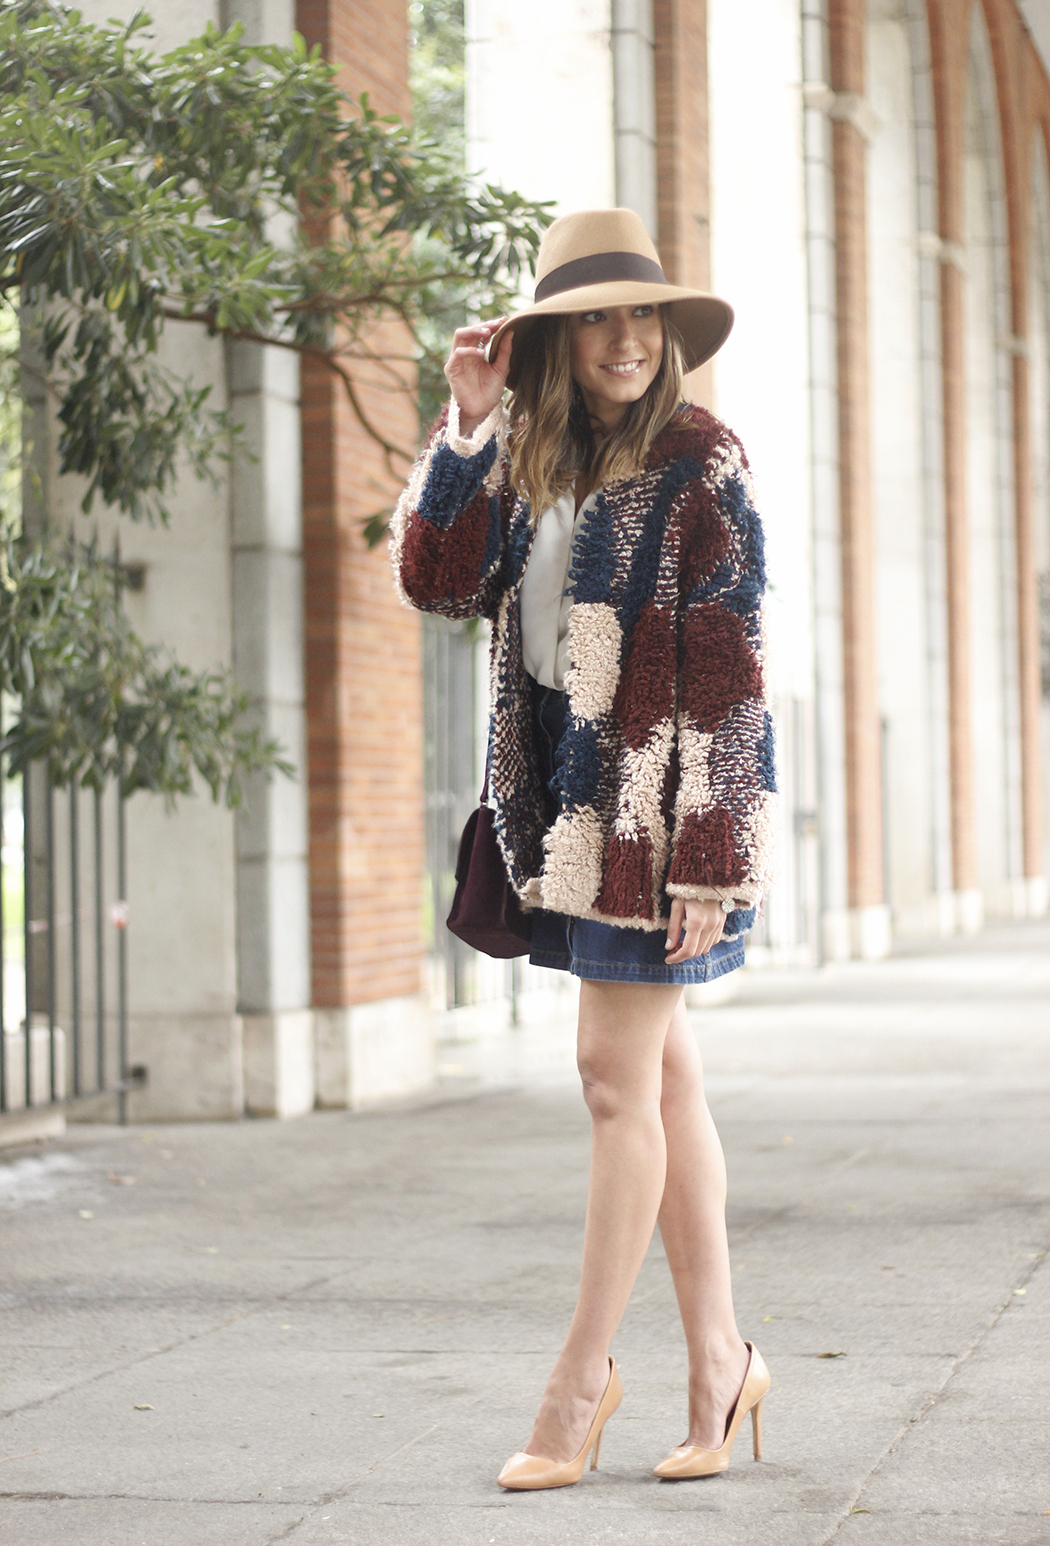 Cardigan Denim Skirt Camel Hat Burgundy Bag outfit03